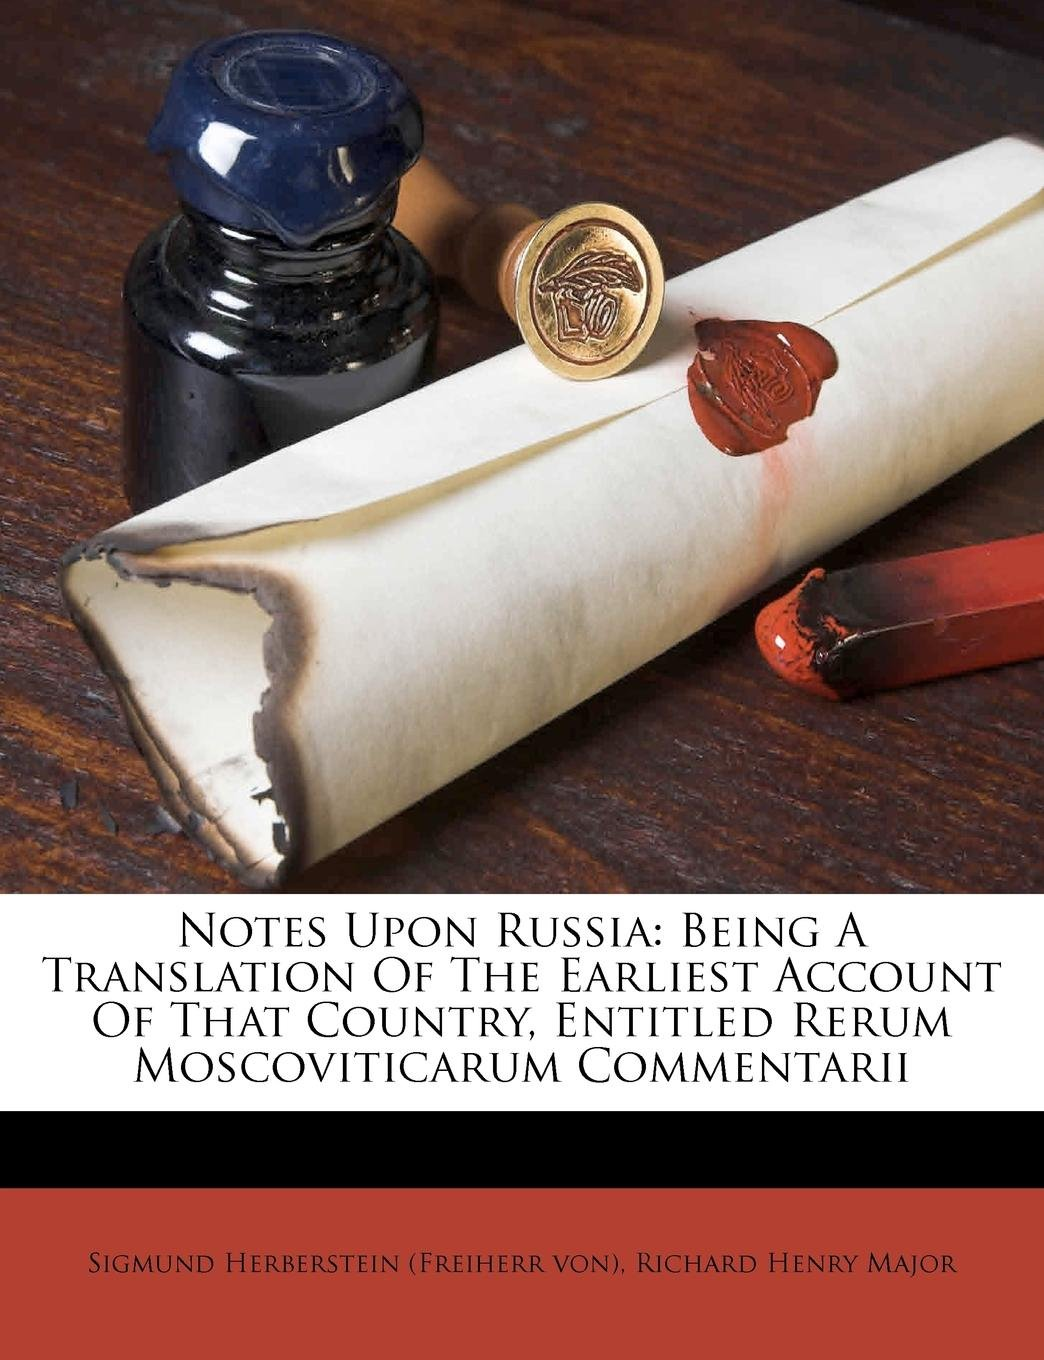 Download Notes Upon Russia: Being A Translation Of The Earliest Account Of That Country, Entitled Rerum Moscoviticarum Commentarii pdf